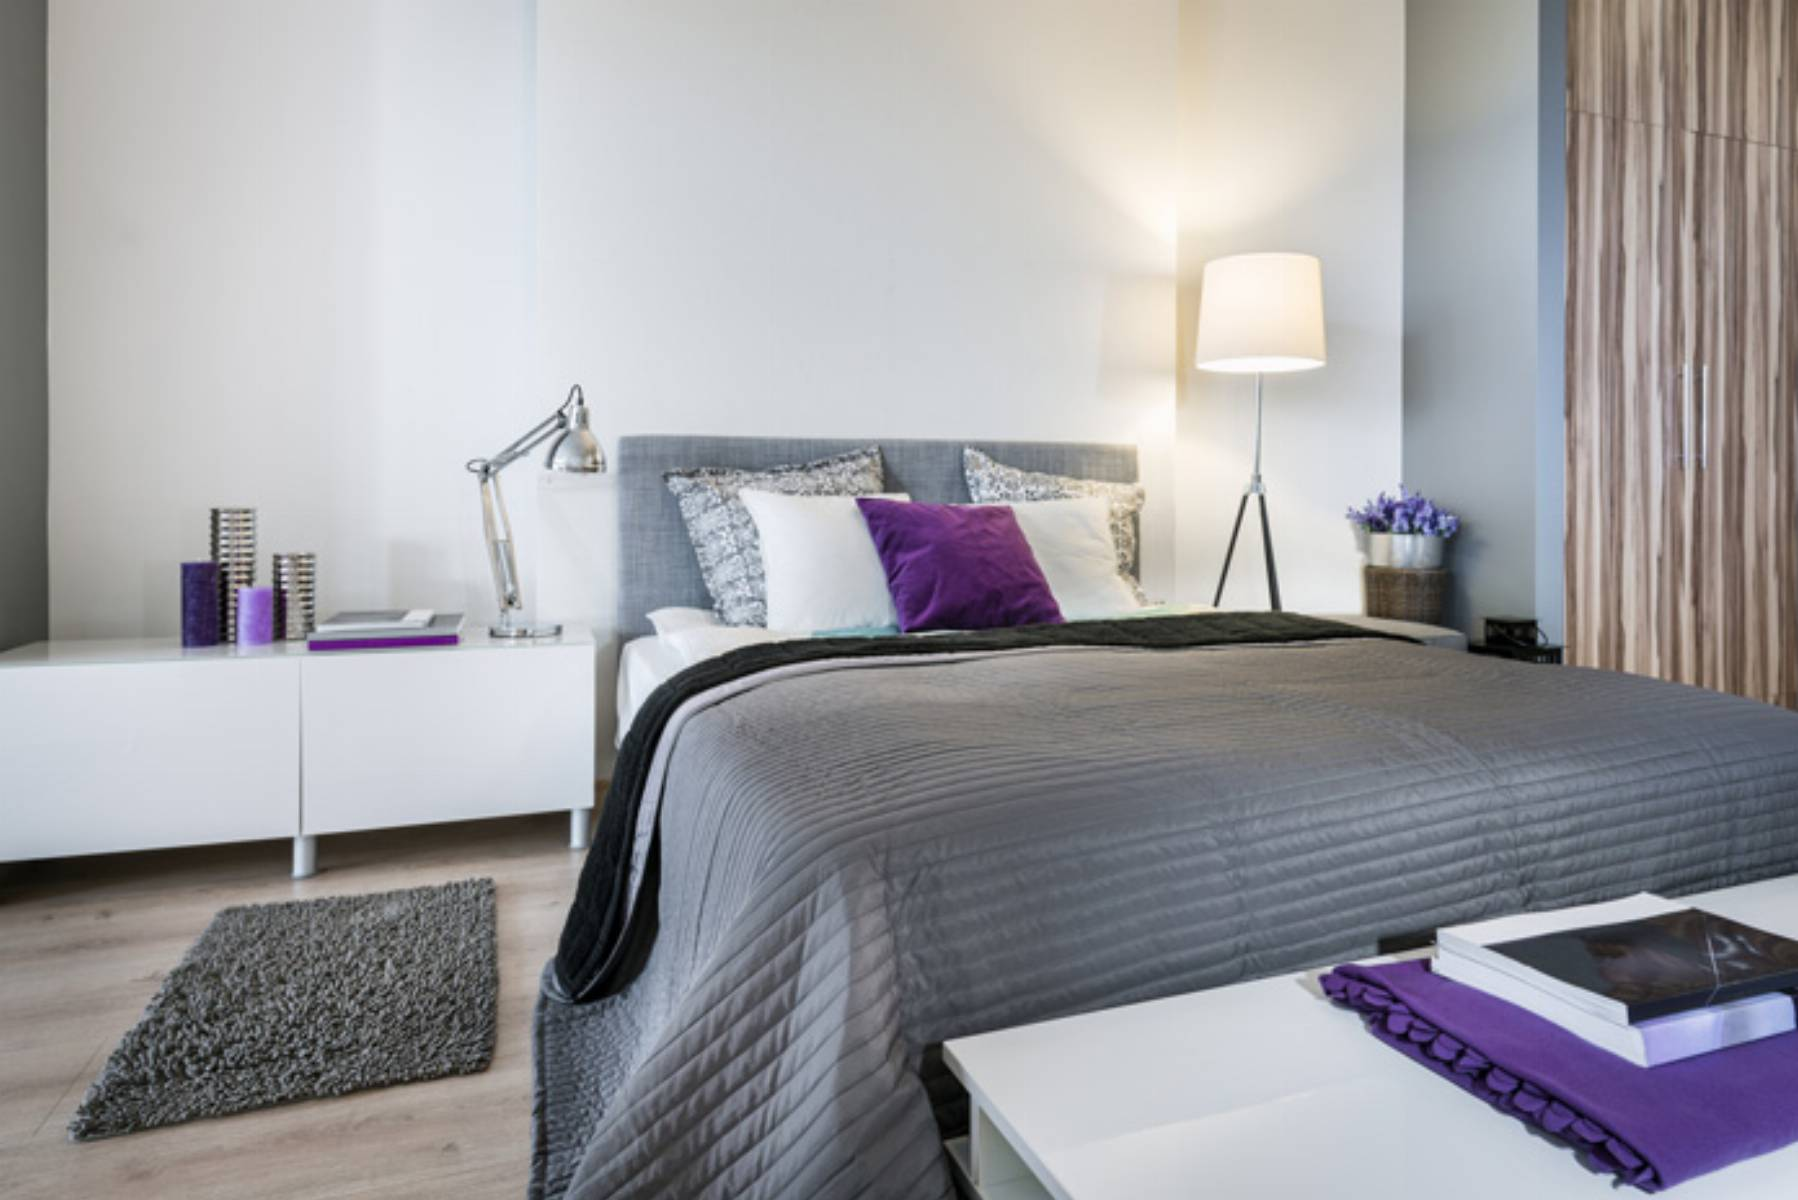 Bedroom interior with gray bed